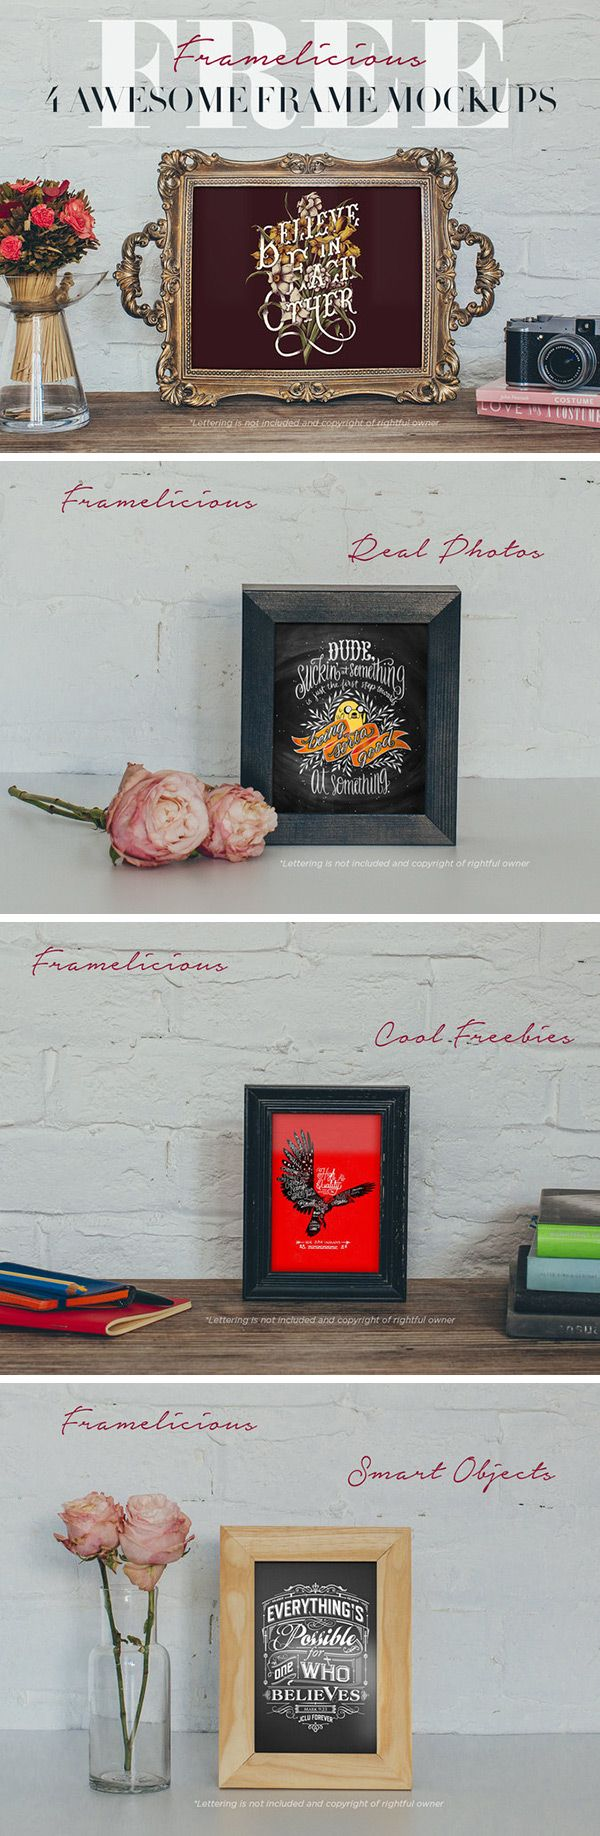 Showcase your artwork or design in a stylish manner with these realistic, eye catching frame mock-ups created...